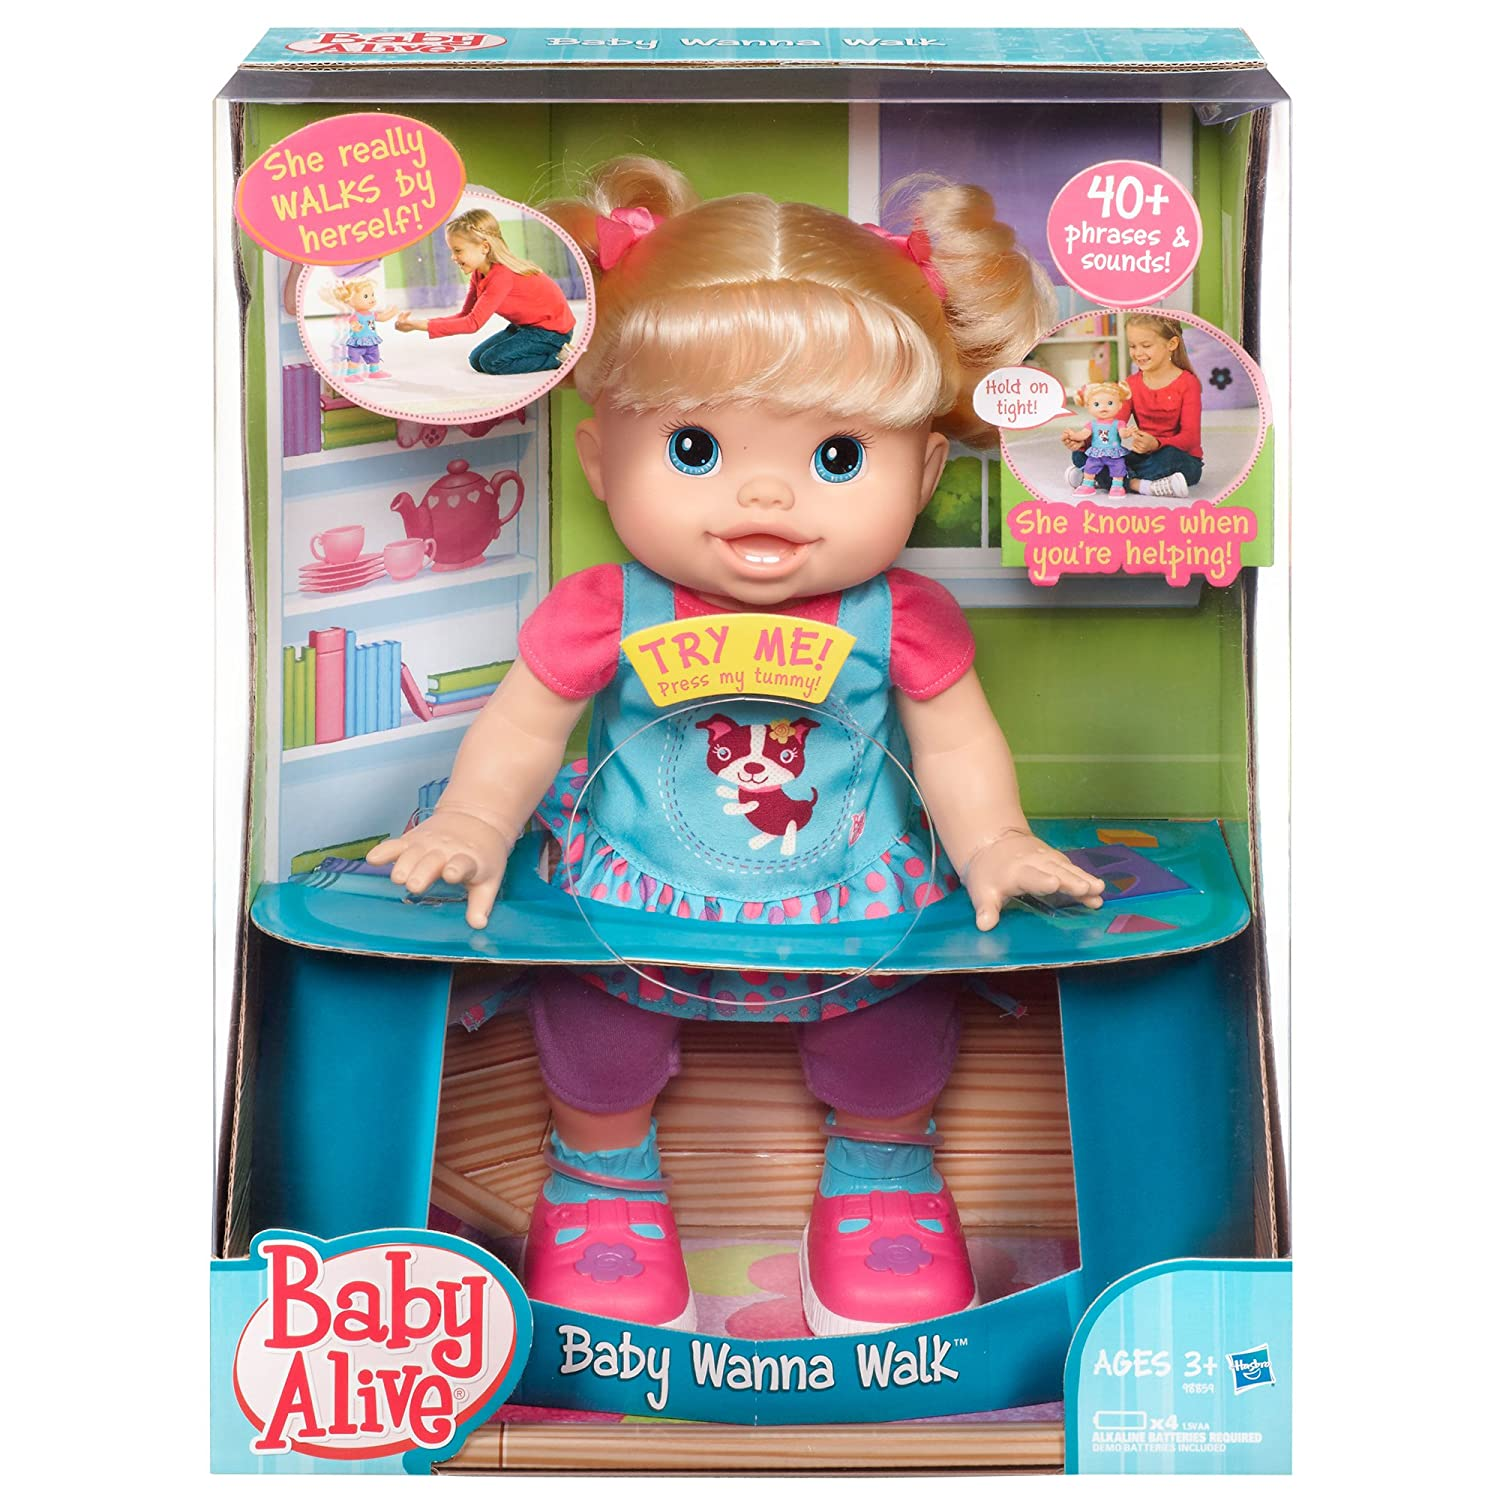 Baby Wanna Walk Amazon Toys & Games